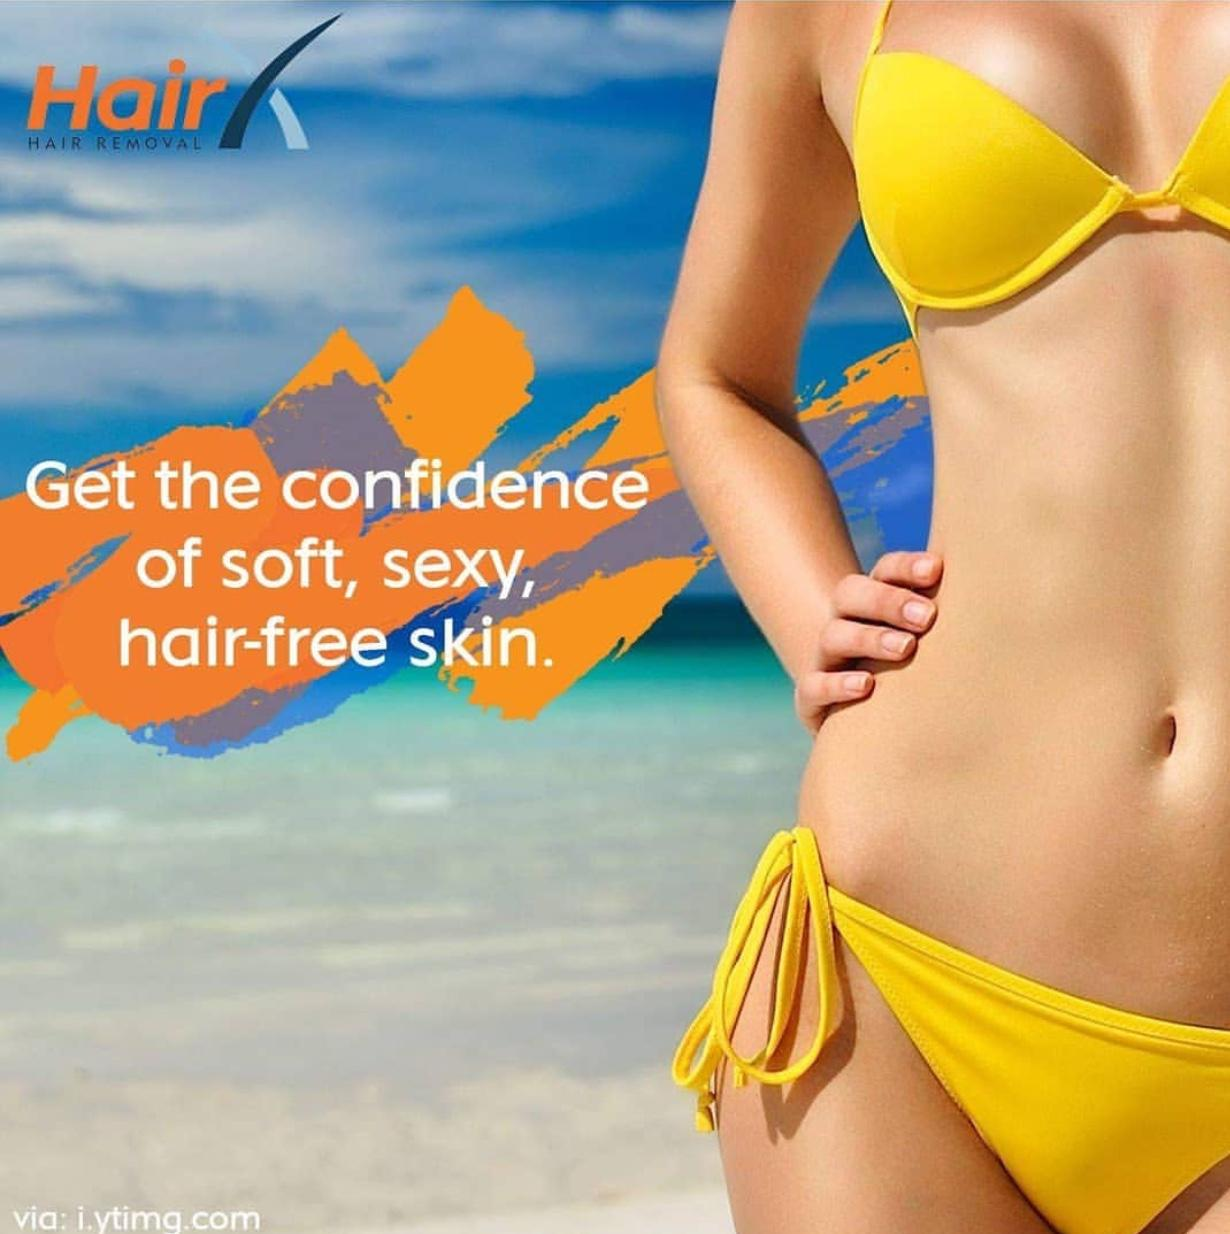 Hair X Hair Removal P5000 Gift Voucher By Gifted.ph.